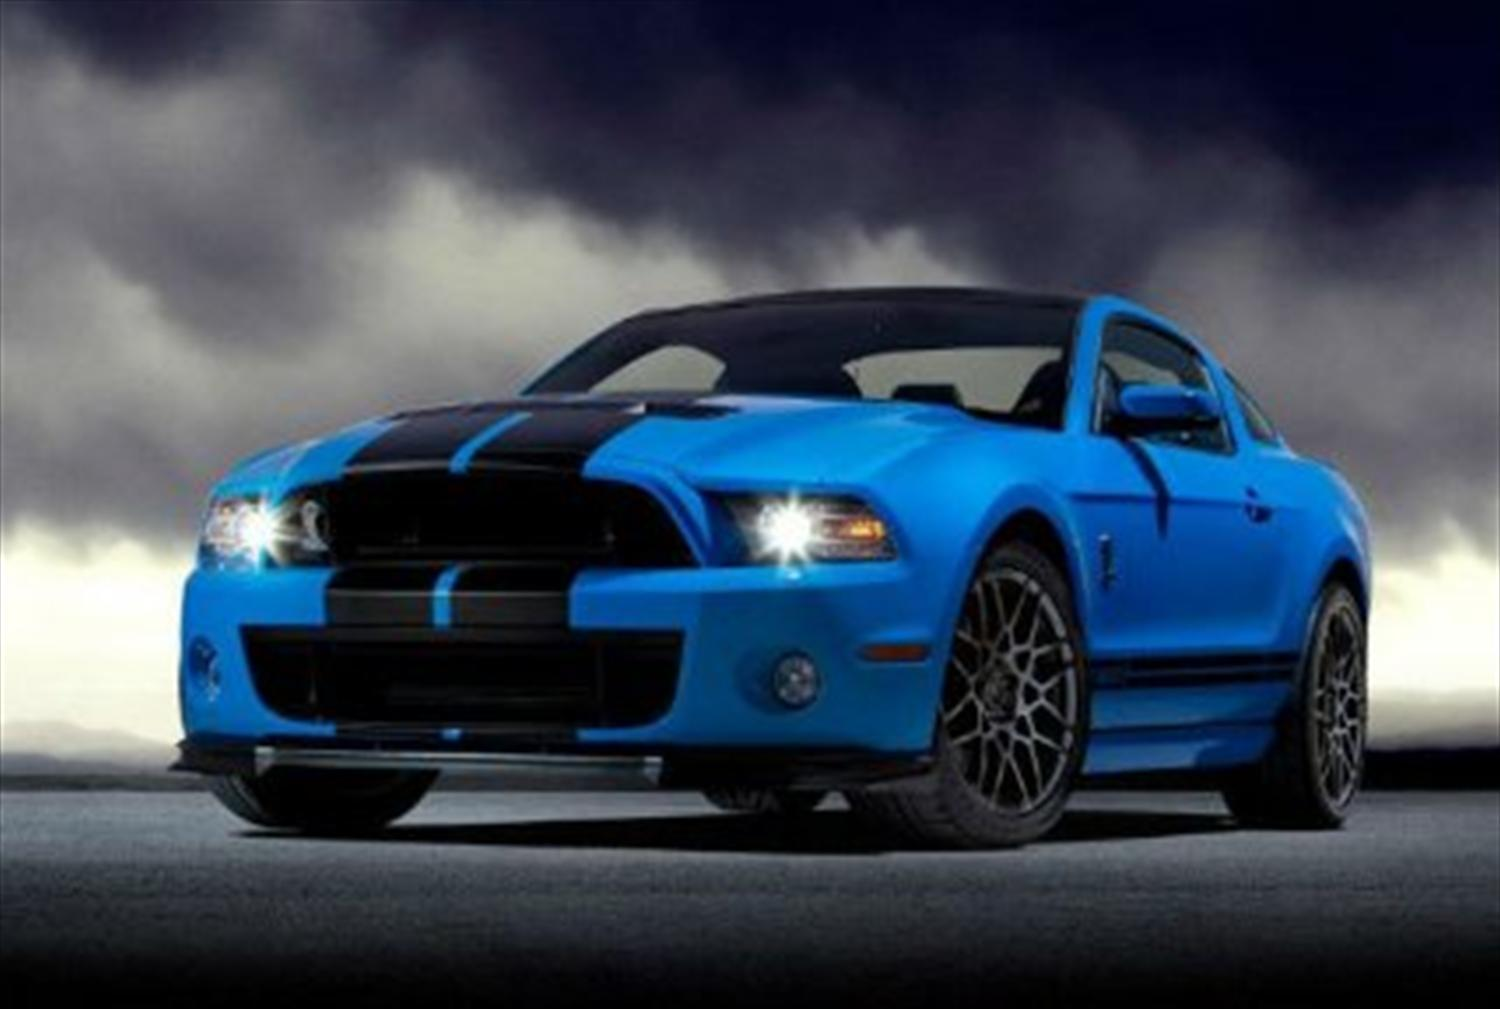 2014 Ford Mustang will reach UK showrooms